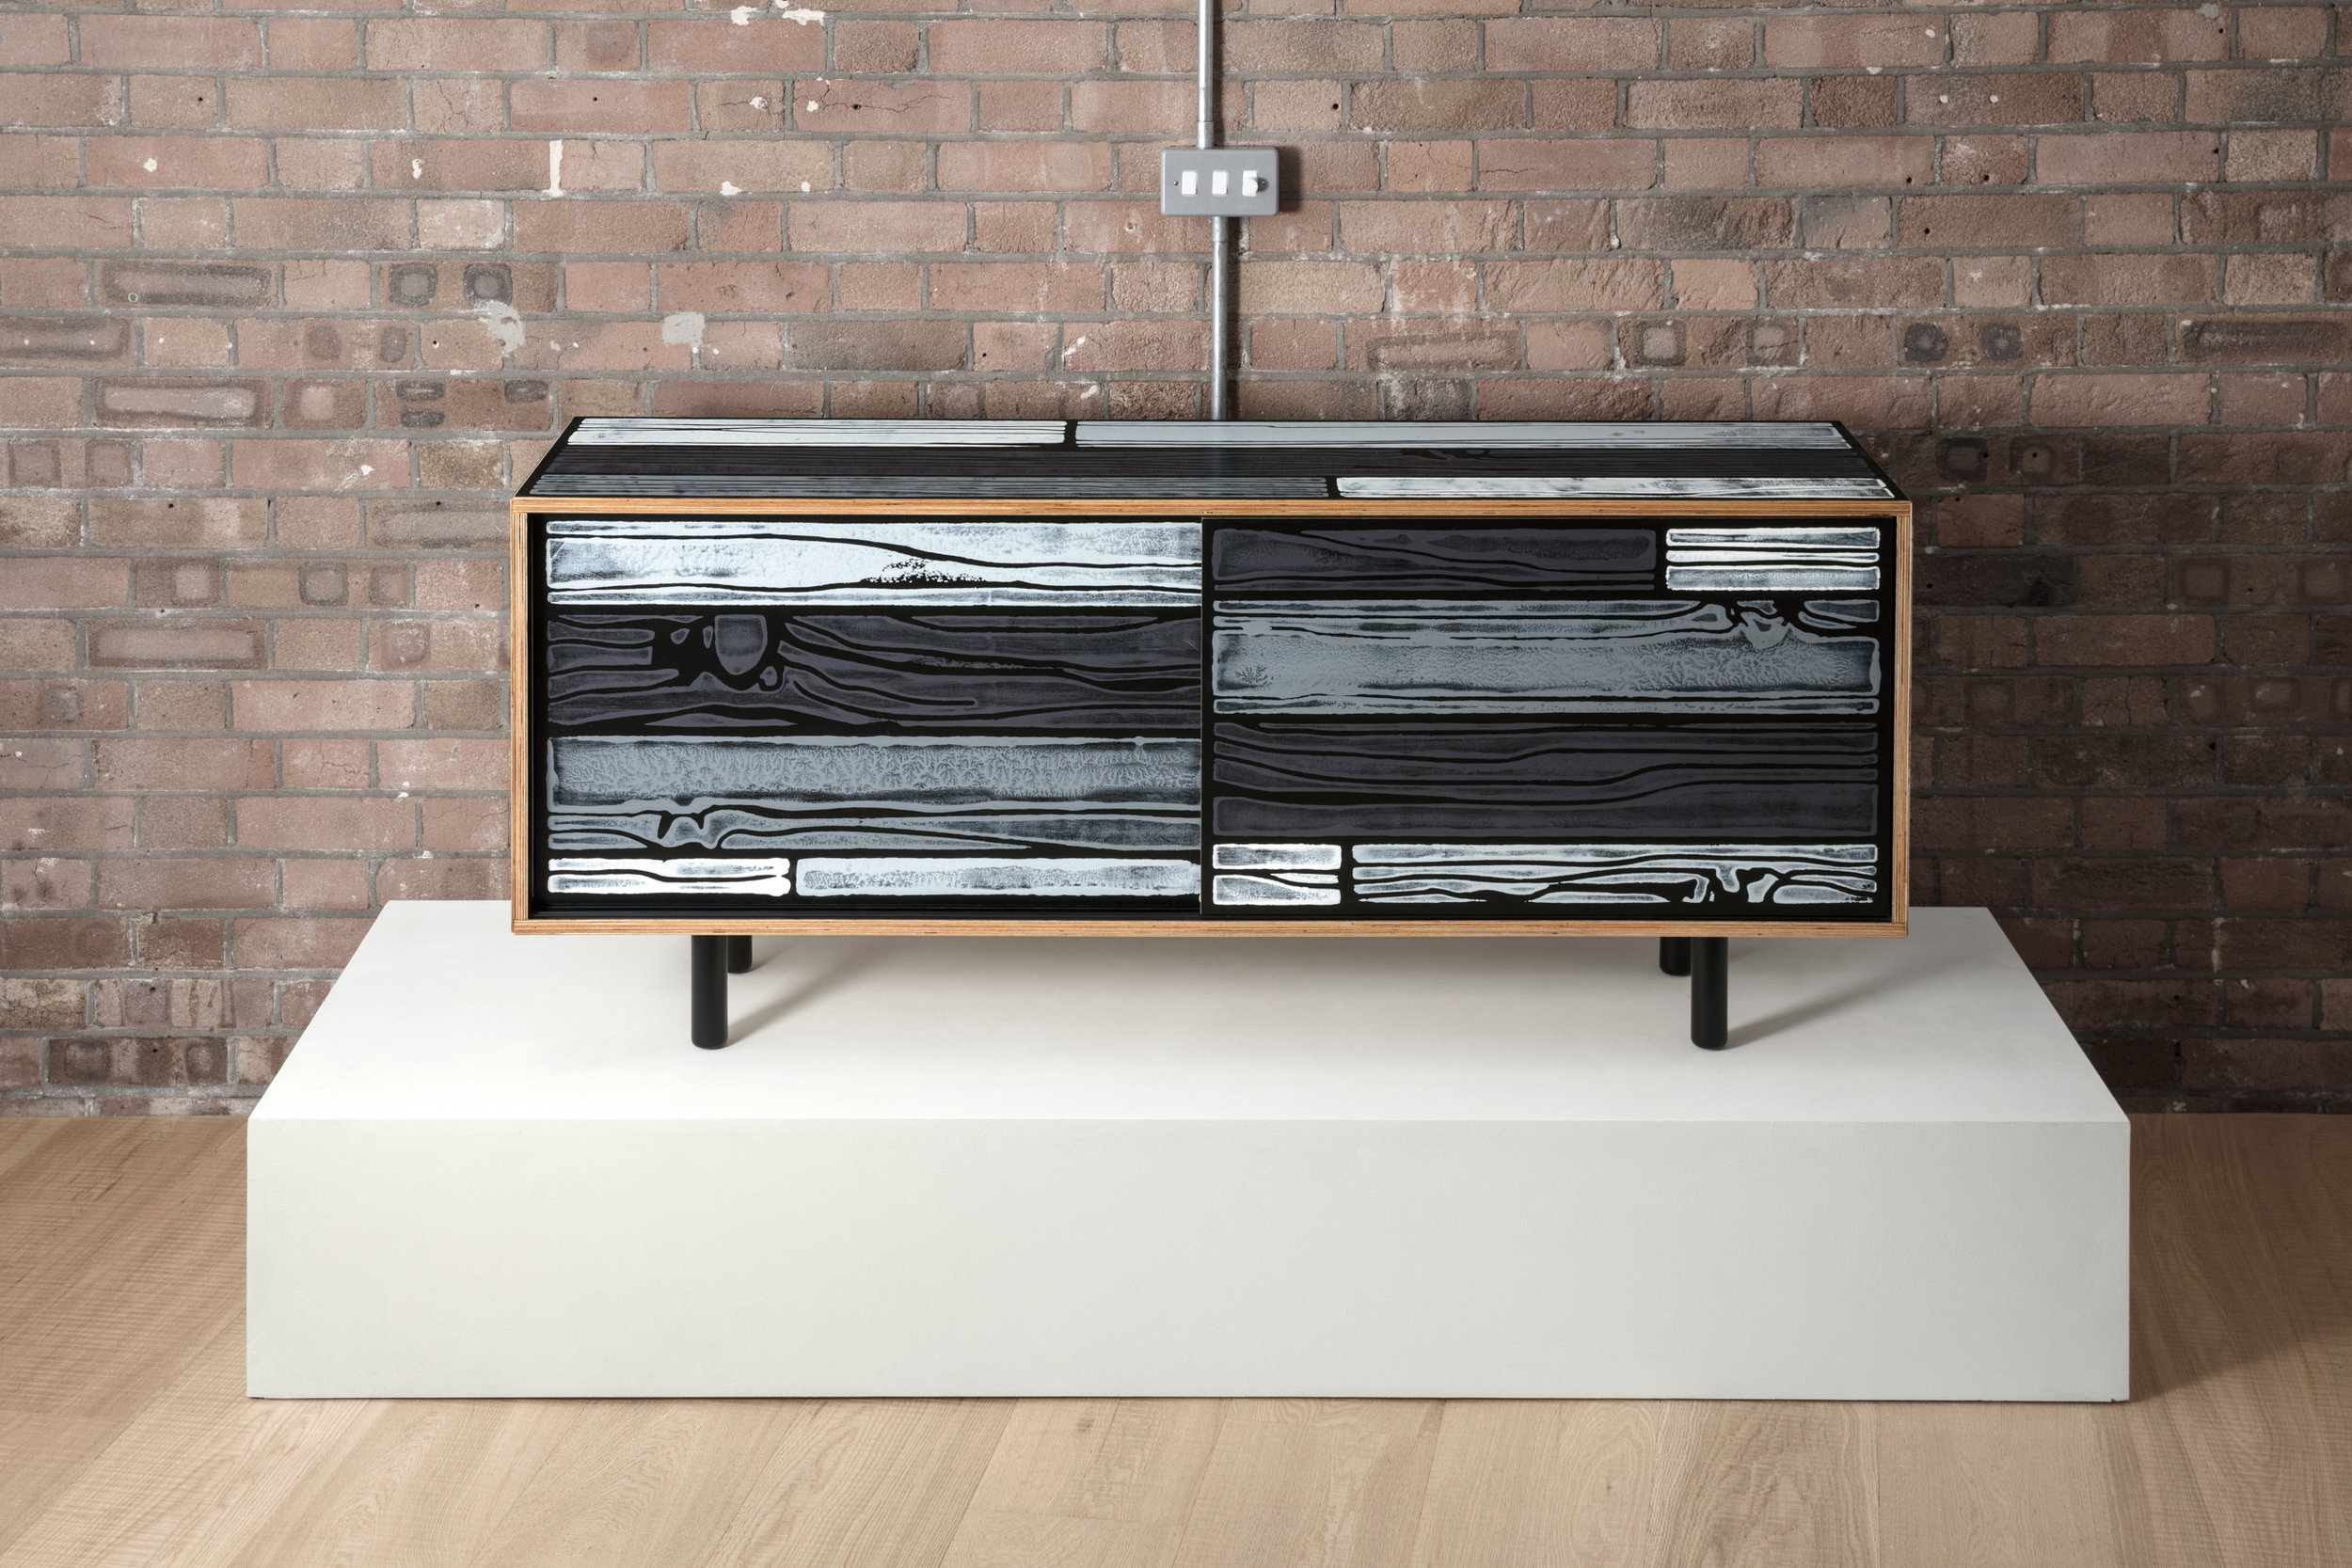 Wrongwoods  Low Cabinet designed by Richard Woods and Sebastian Wrong